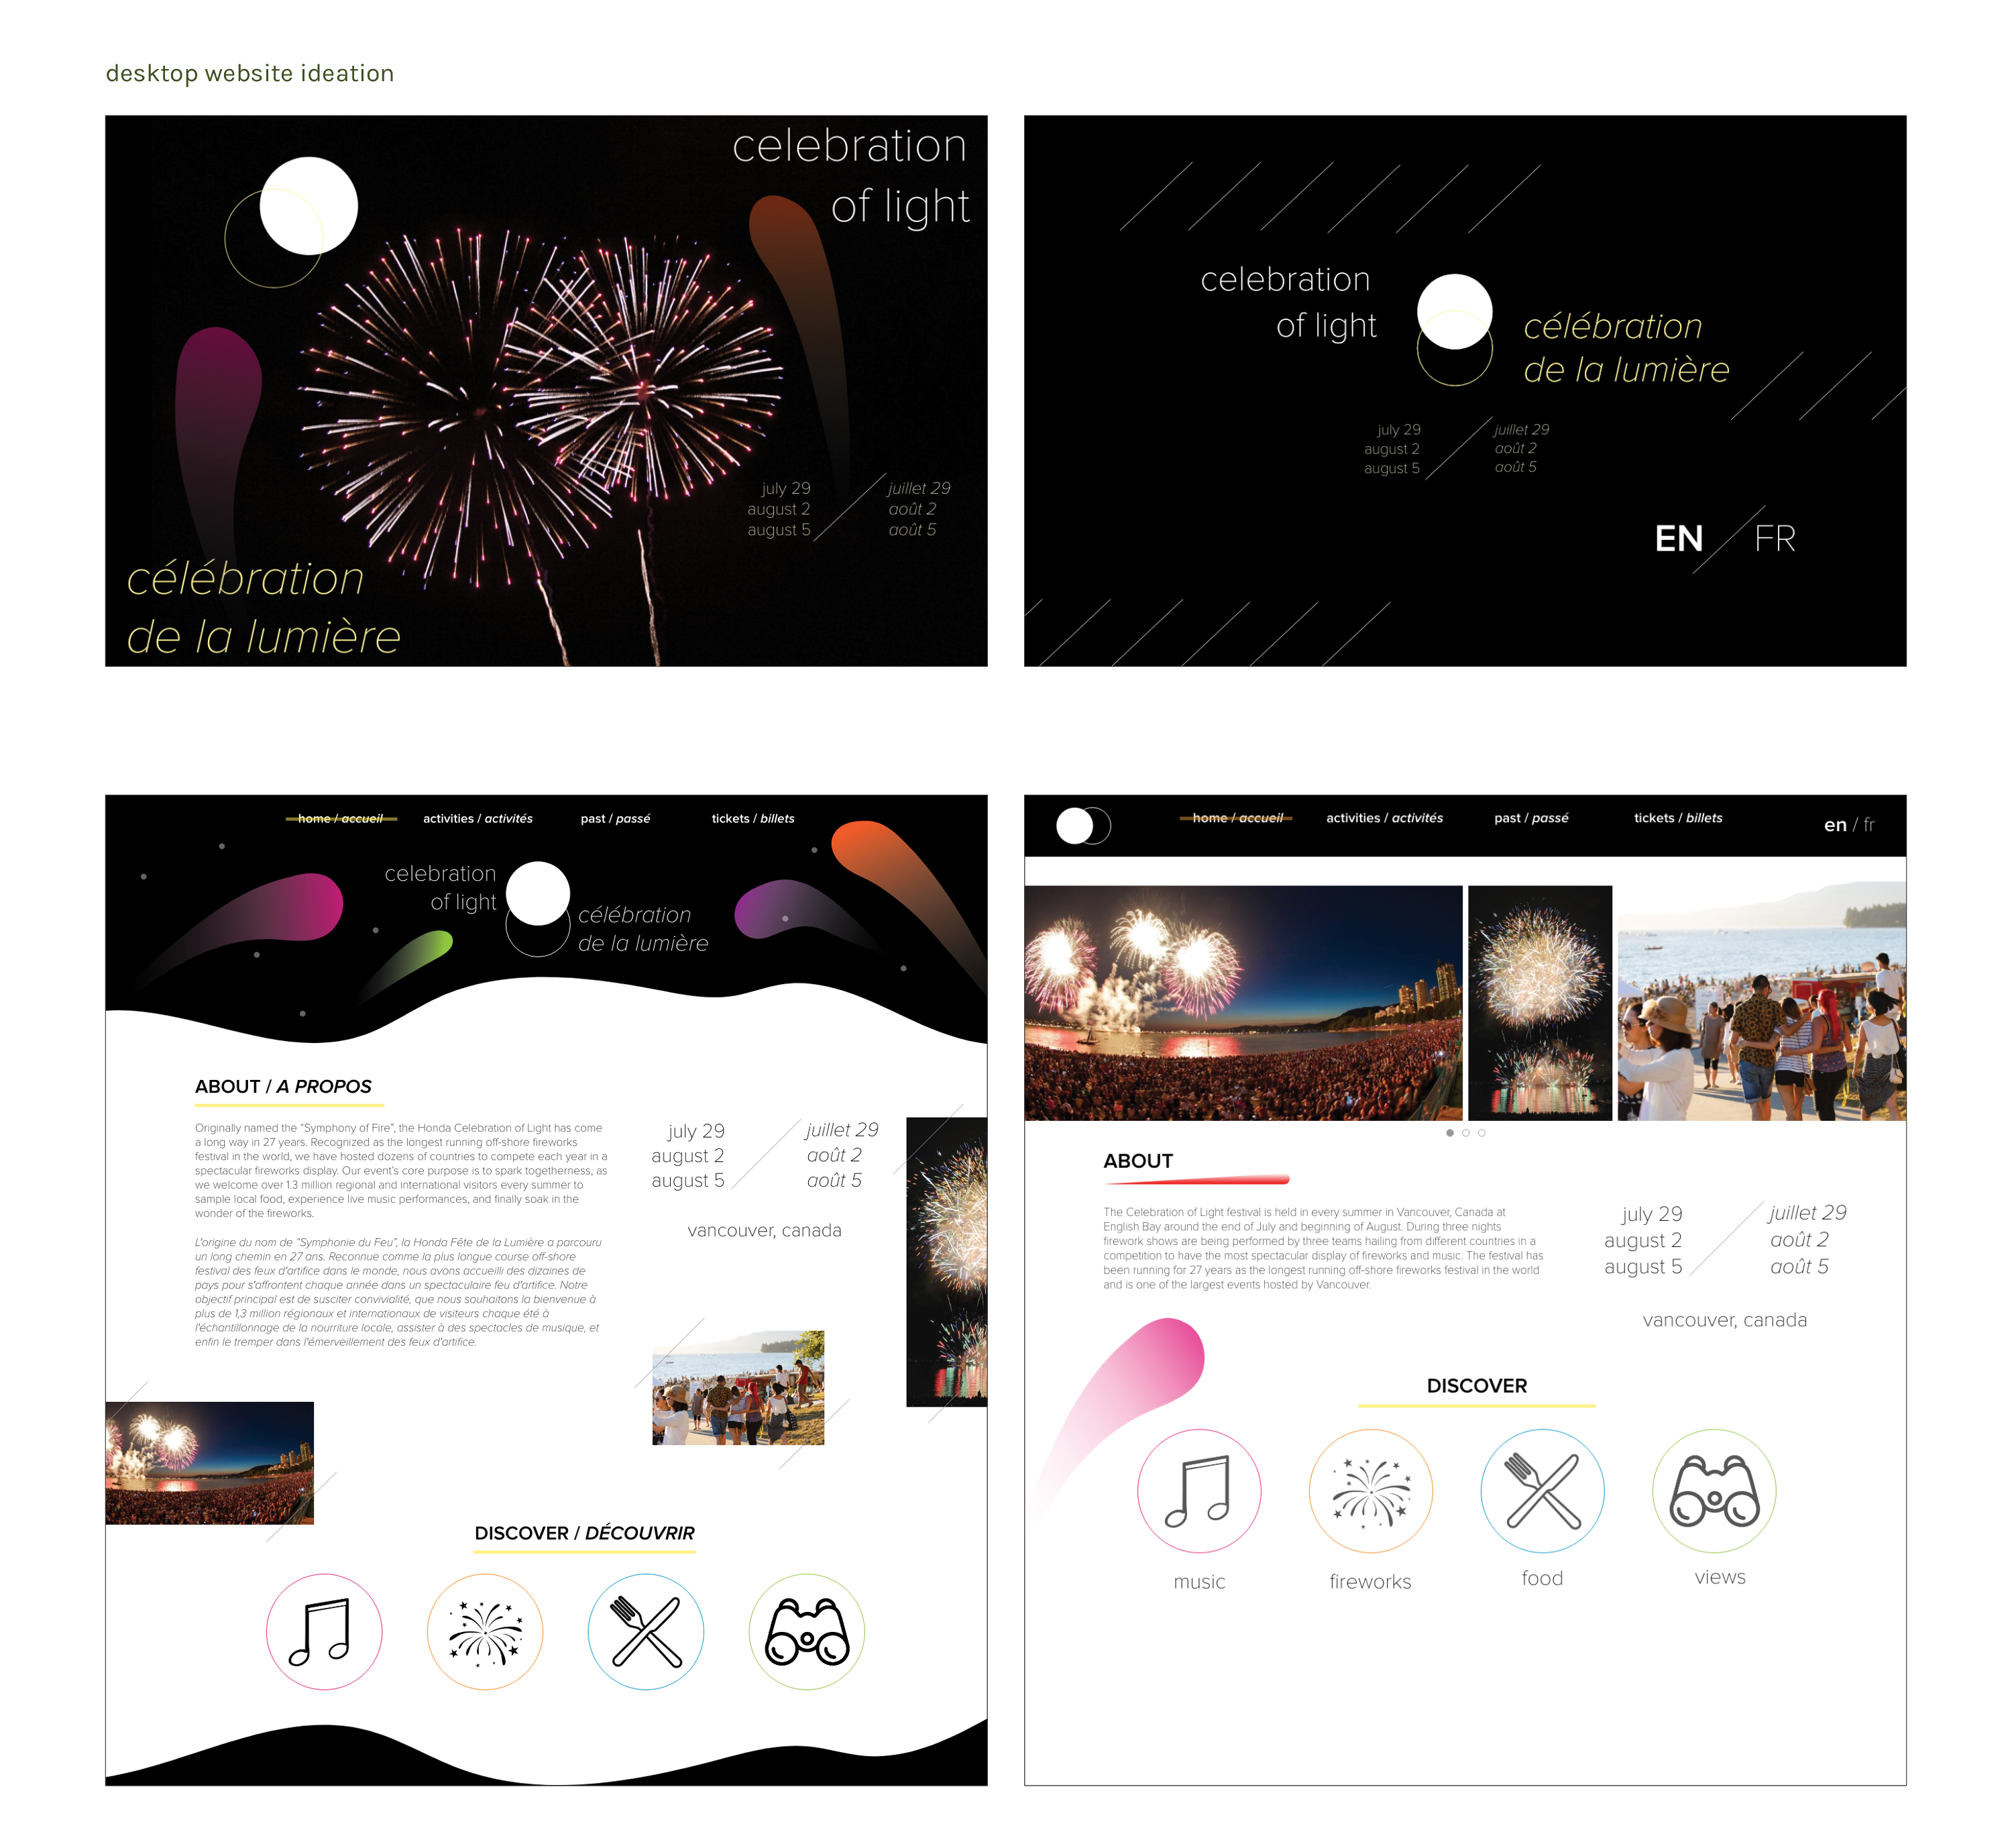 michyoung.com-celebrationoflight-desktop-website-ideation